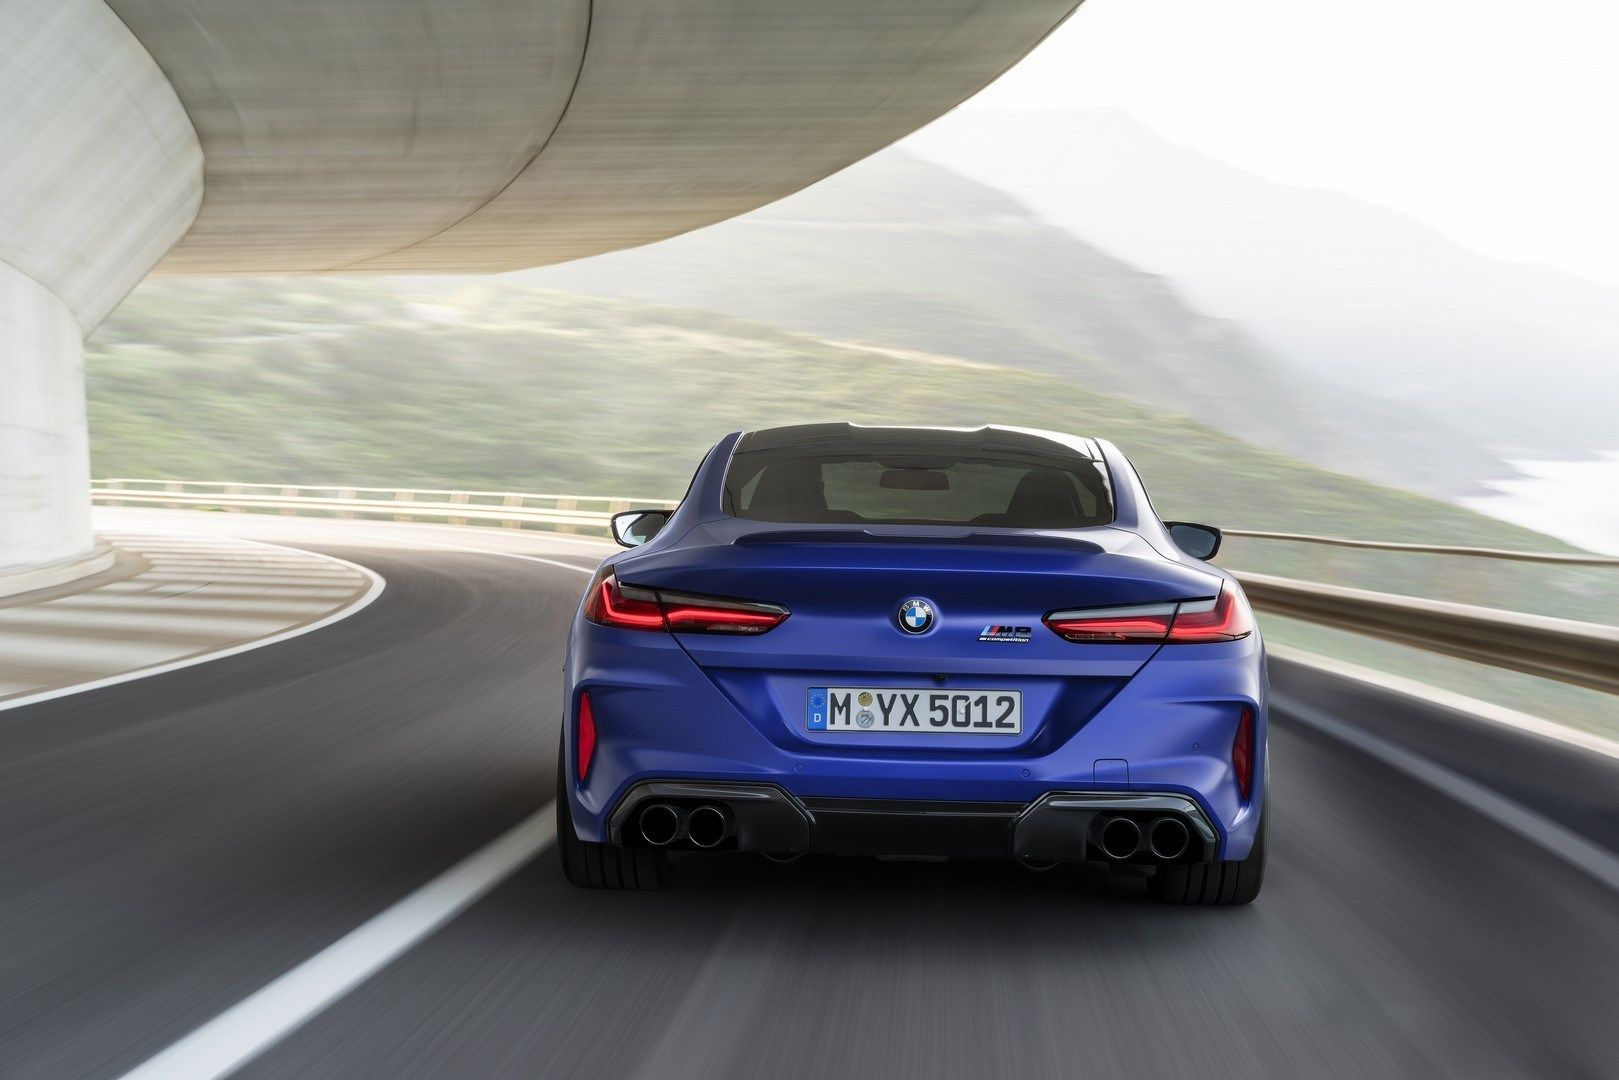 Bmw M8 Competition Coupe Gallery Trackrecon Bmw Coupe New Bmw